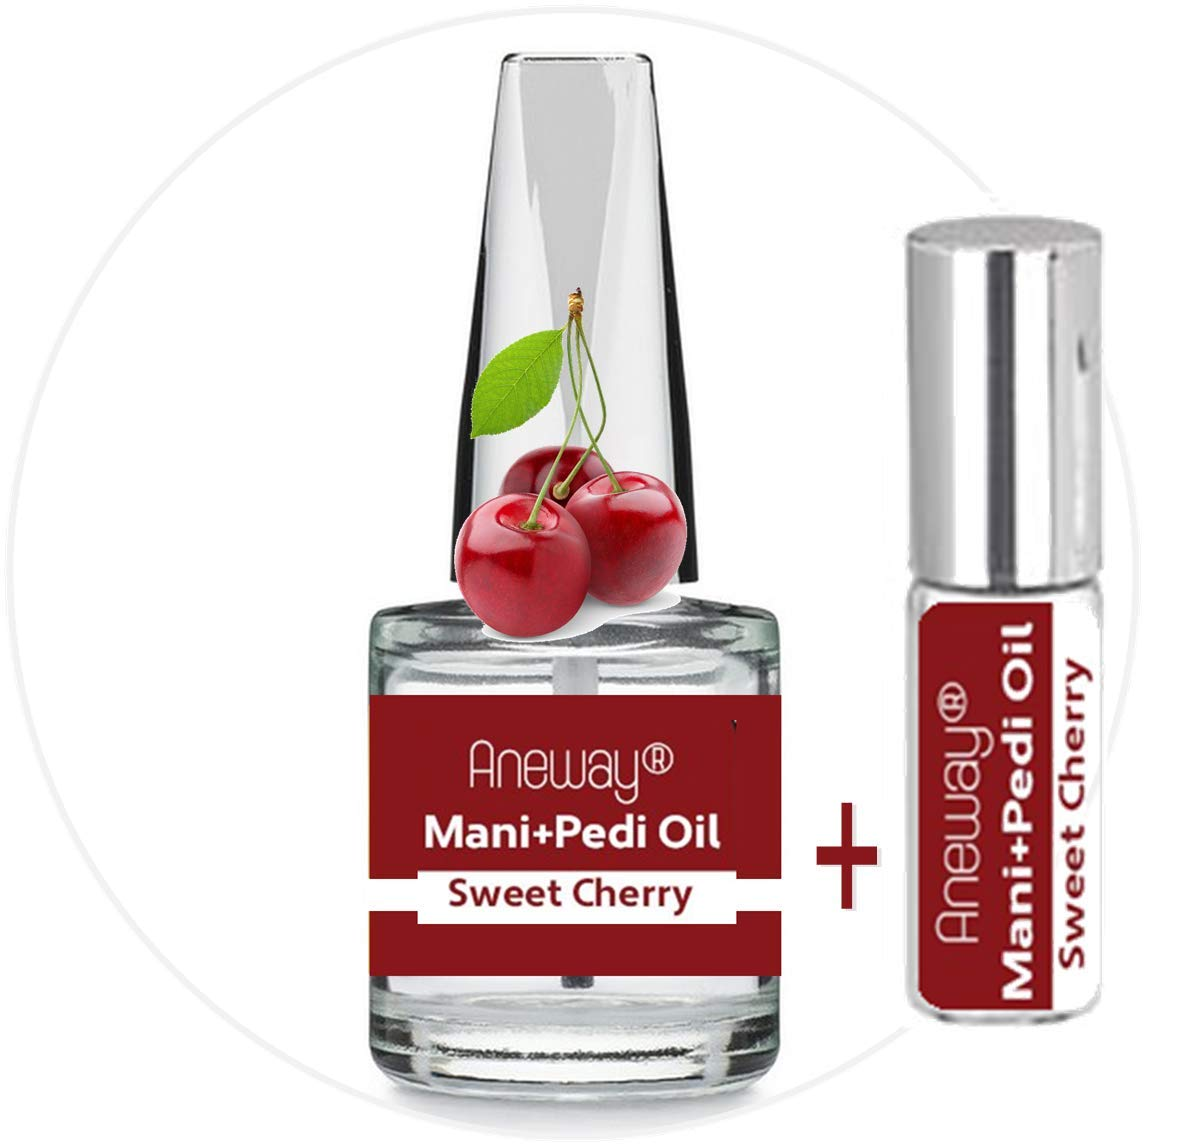 Mani+Pedi OIL - Sweet Cherry - Nourishing + Aromatic Manicure Pedicure Cuticle Oil for Hands, Nails and Feet! - BOTH 1/3 FL. OZ. (Brush-On) plus .2 FL. OZ. (Roll-On) Glass Bottles.